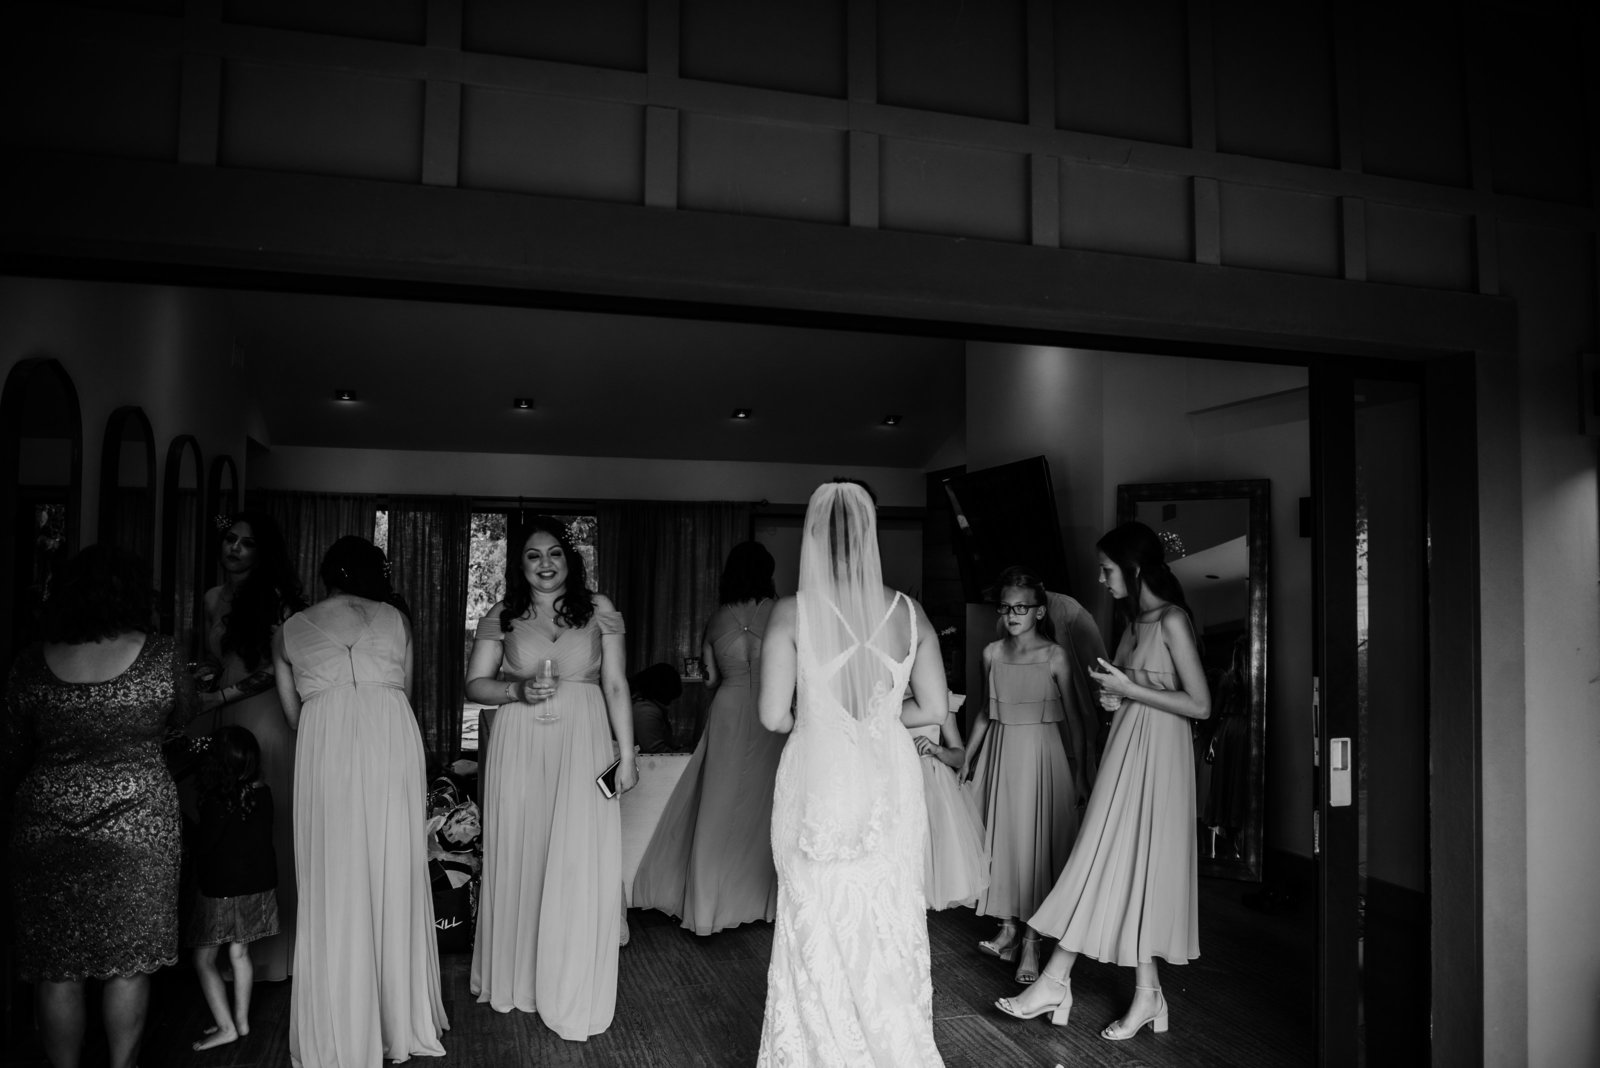 Bride_GalwayDowns Wedding105